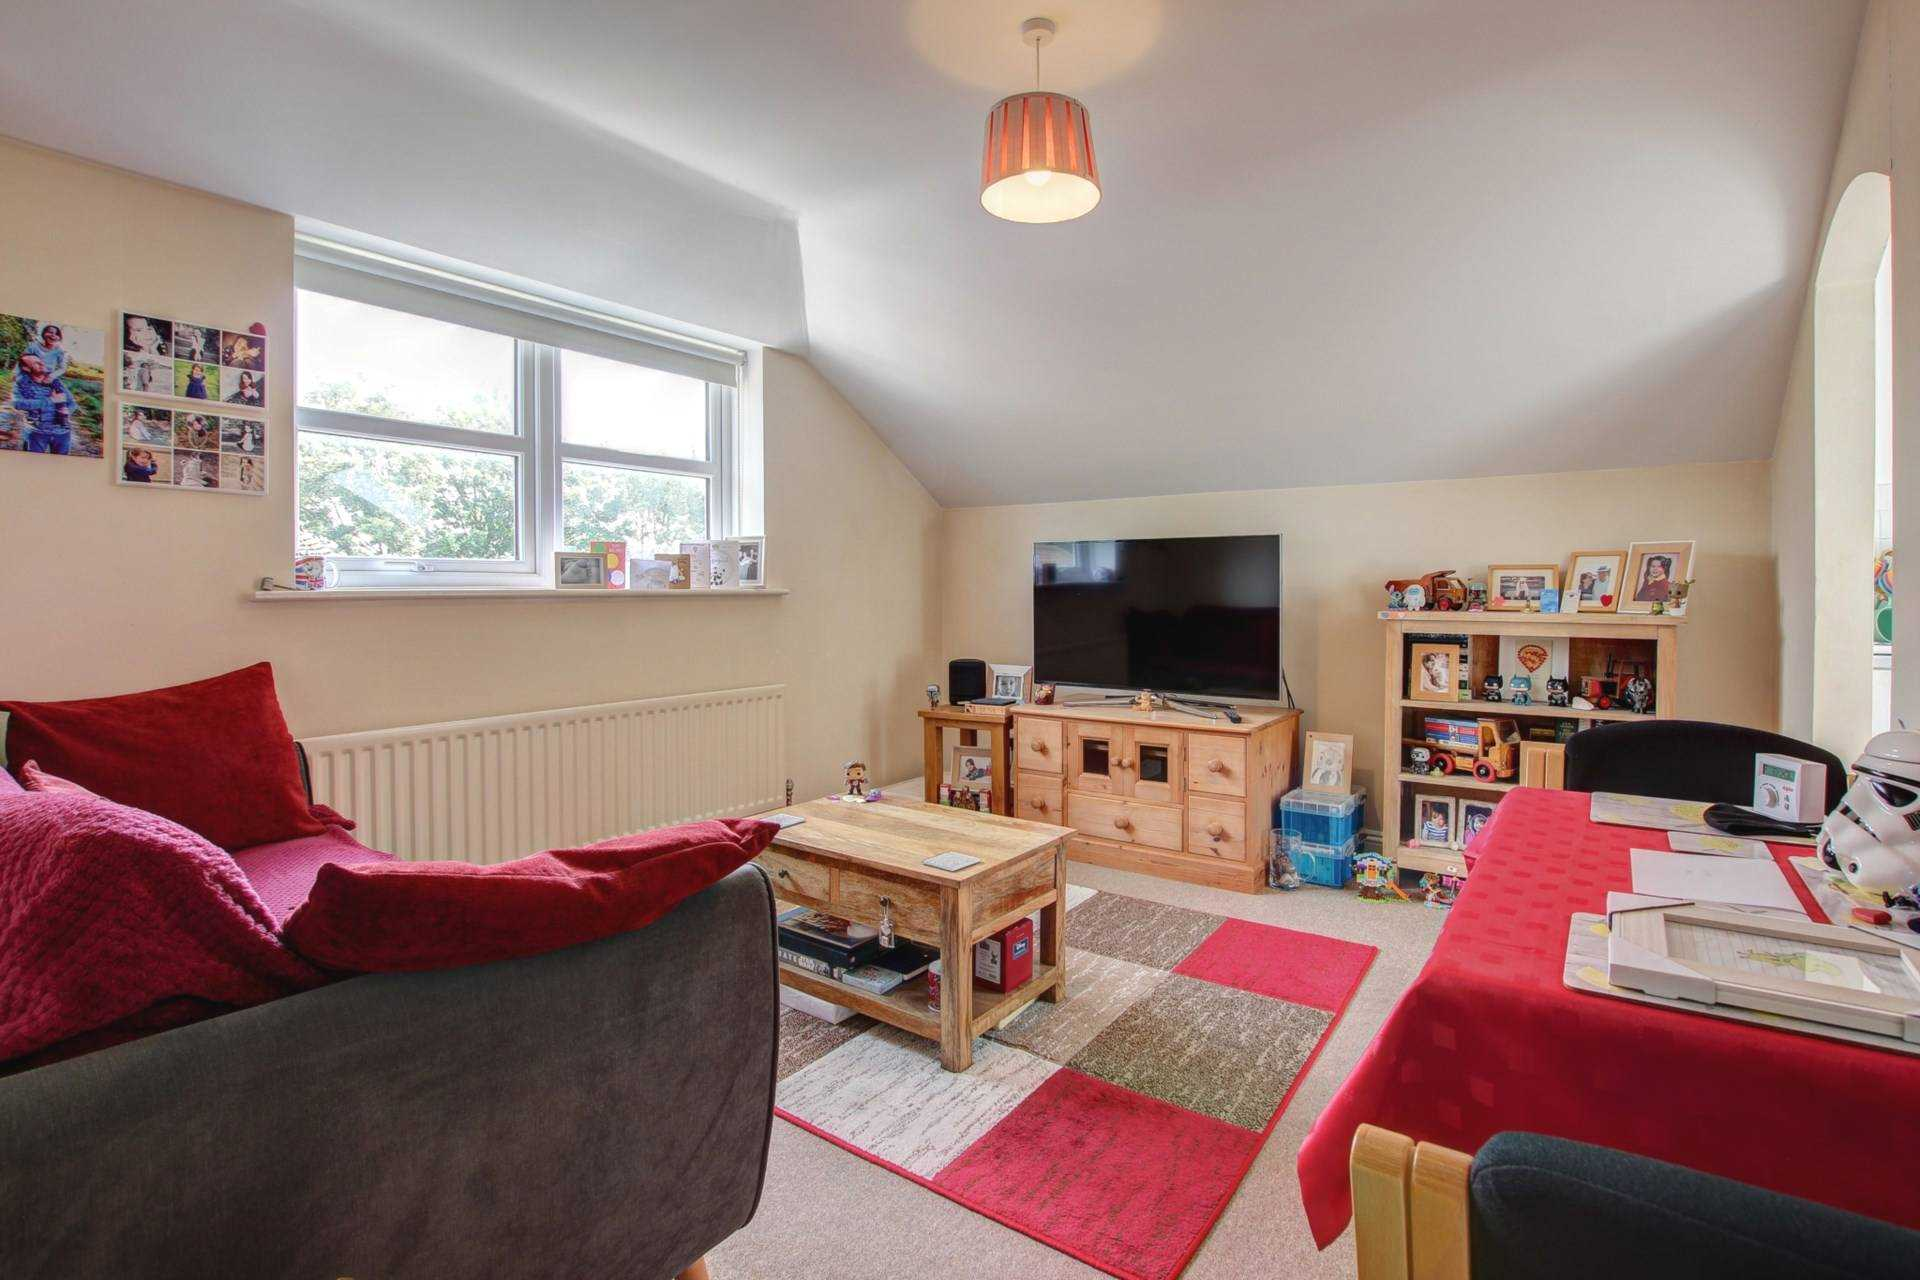 2 bed flat for sale in The Orkneys, Blandford Forum, Blandford Forum 2